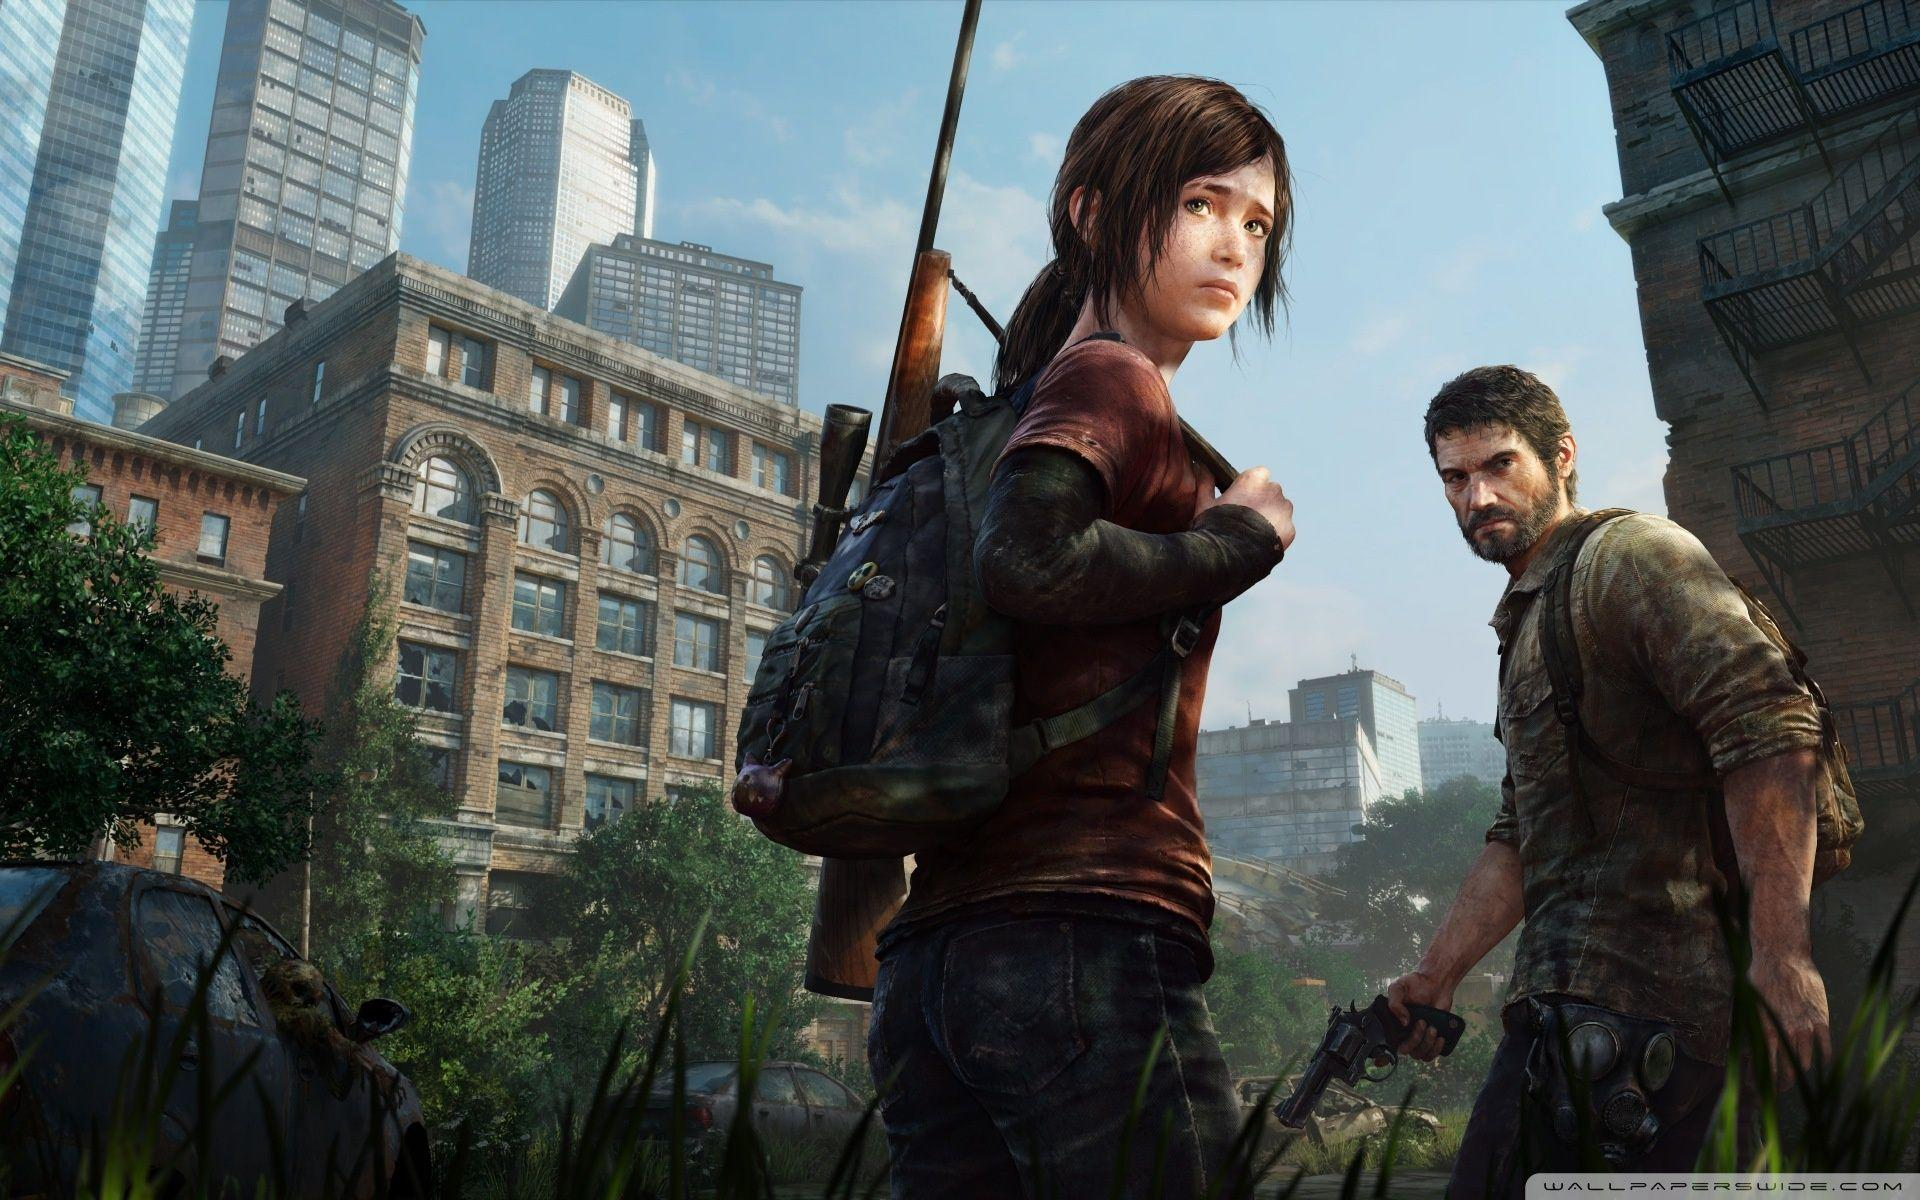 The Last of Us Game HD desktop wallpapers : High Definition